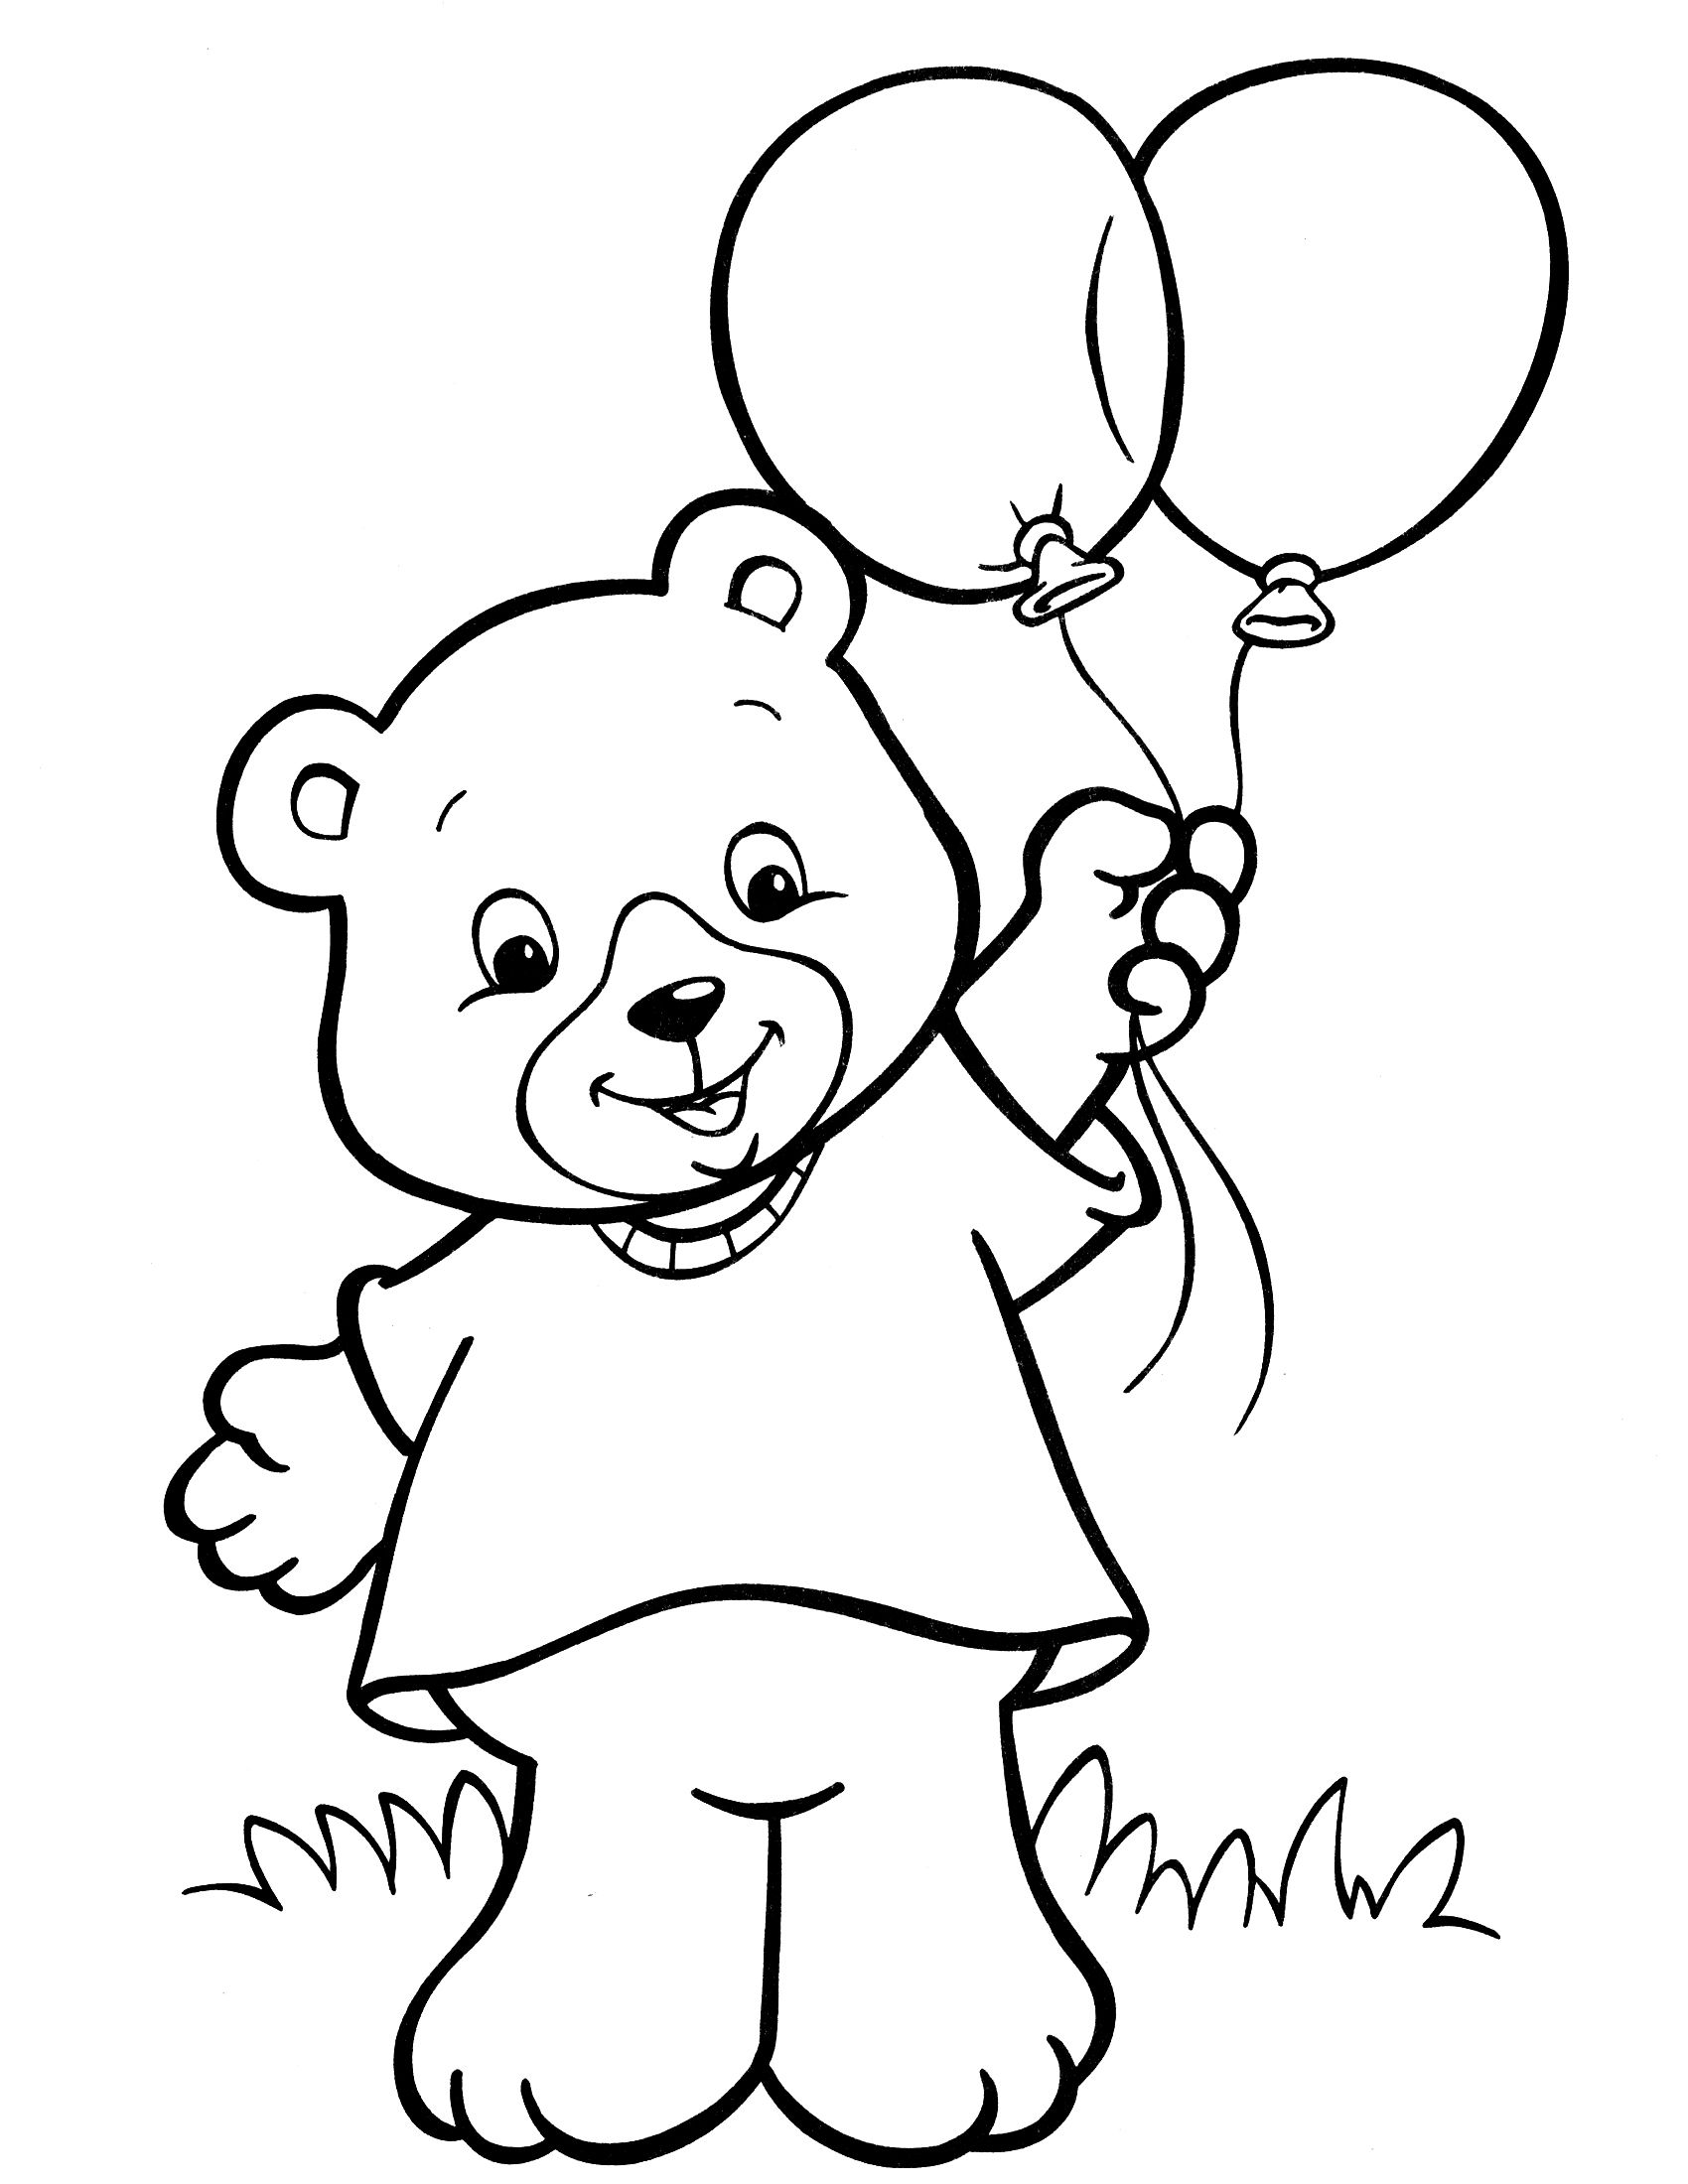 explore crayola coloring pages goals and more - 4 Year Old Coloring Pages